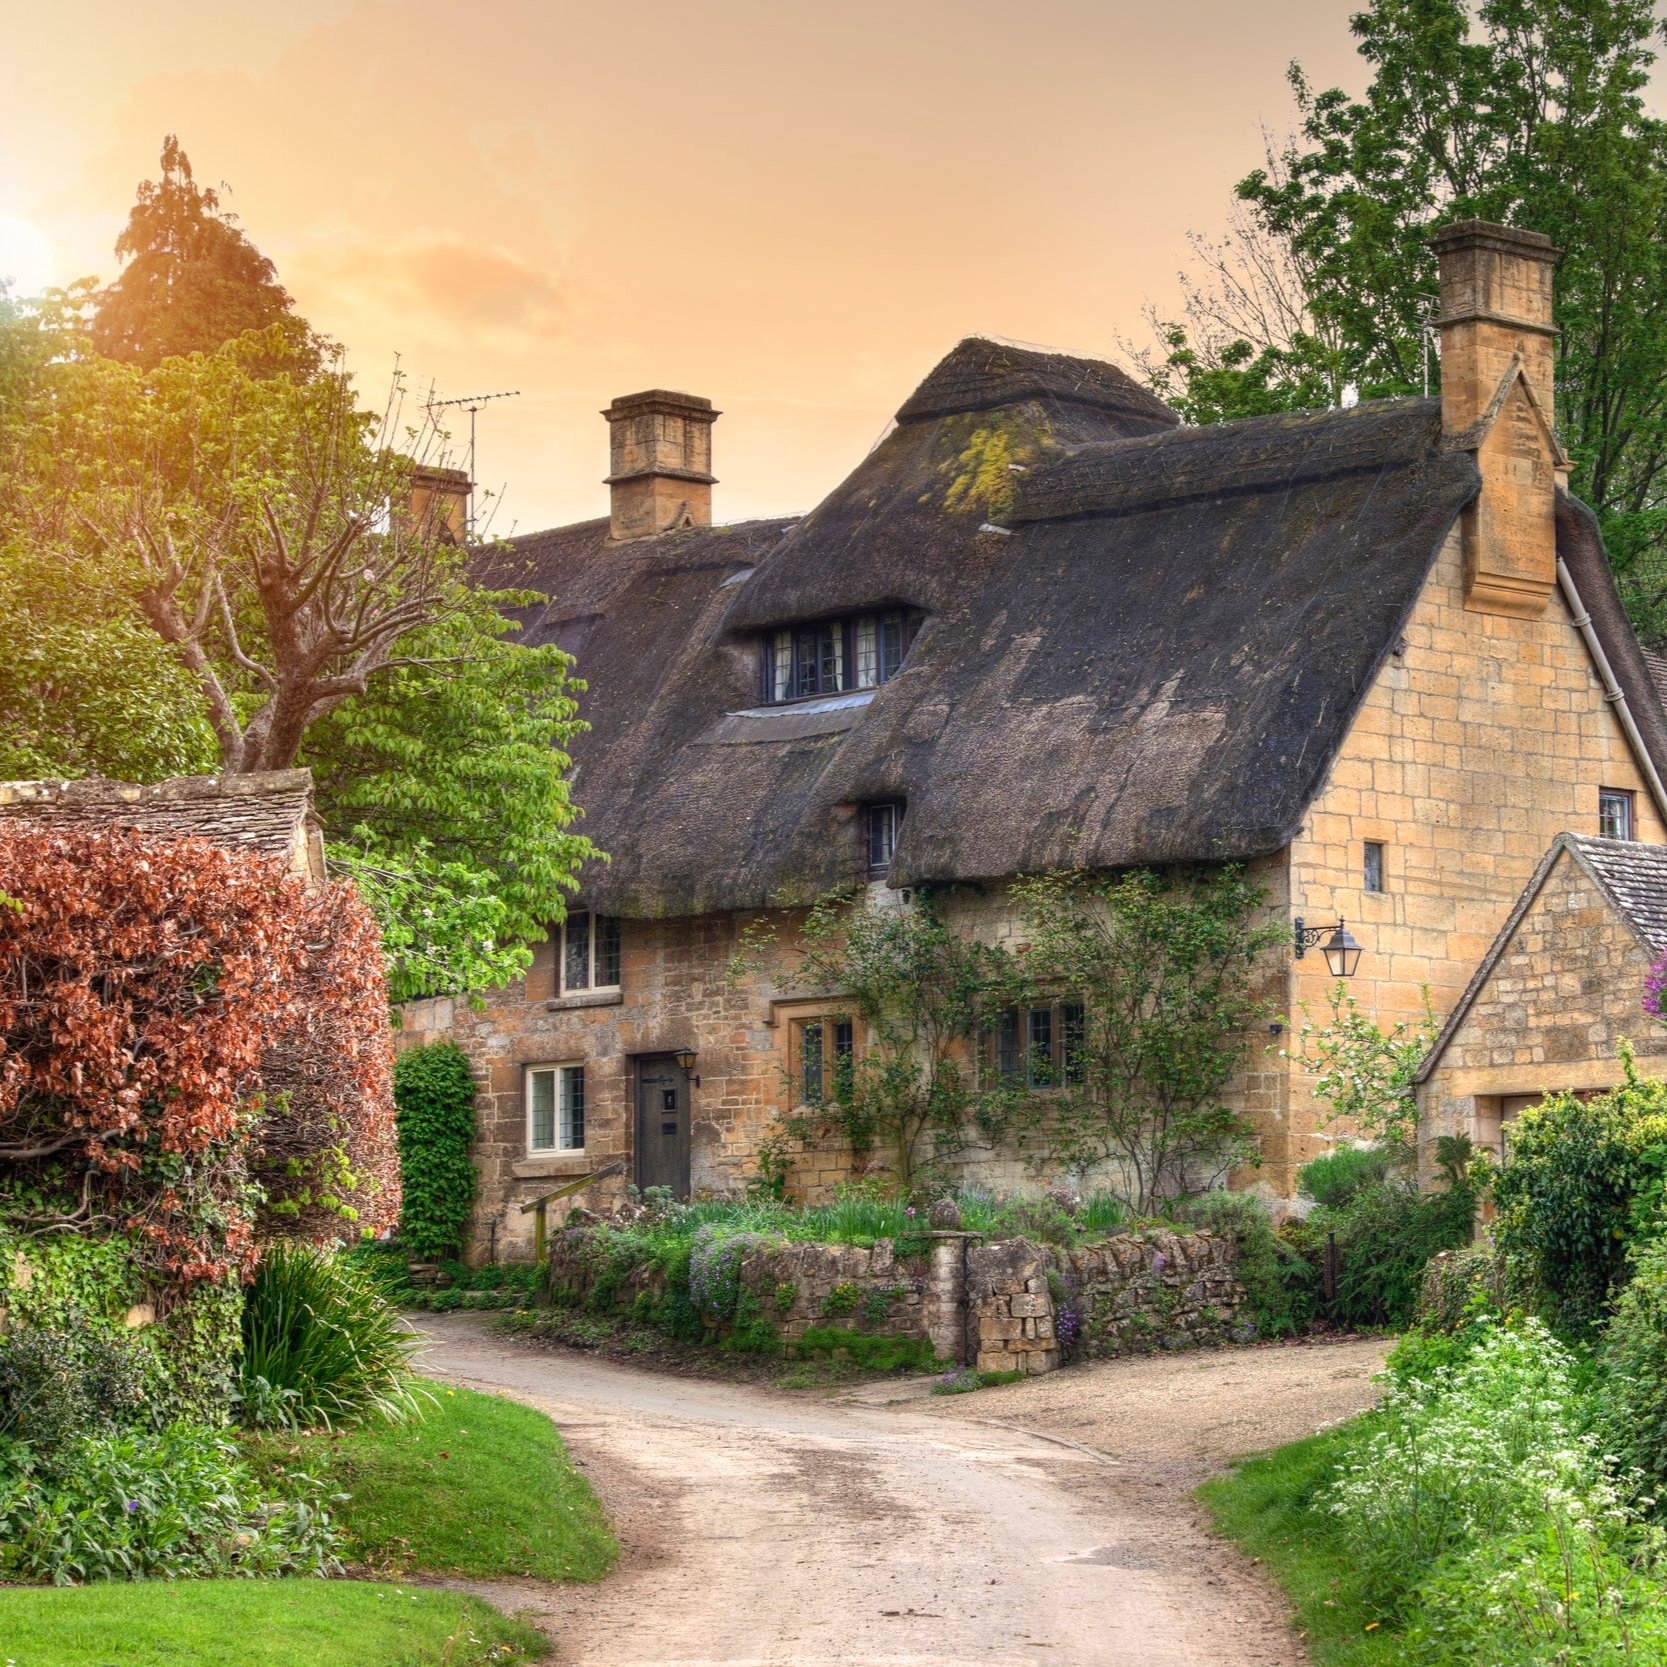 Heart Of The Cotswolds In Luxury Tour - Discover the market town of Stow-on-the-Wold, complete with village stocks and picturesque square…